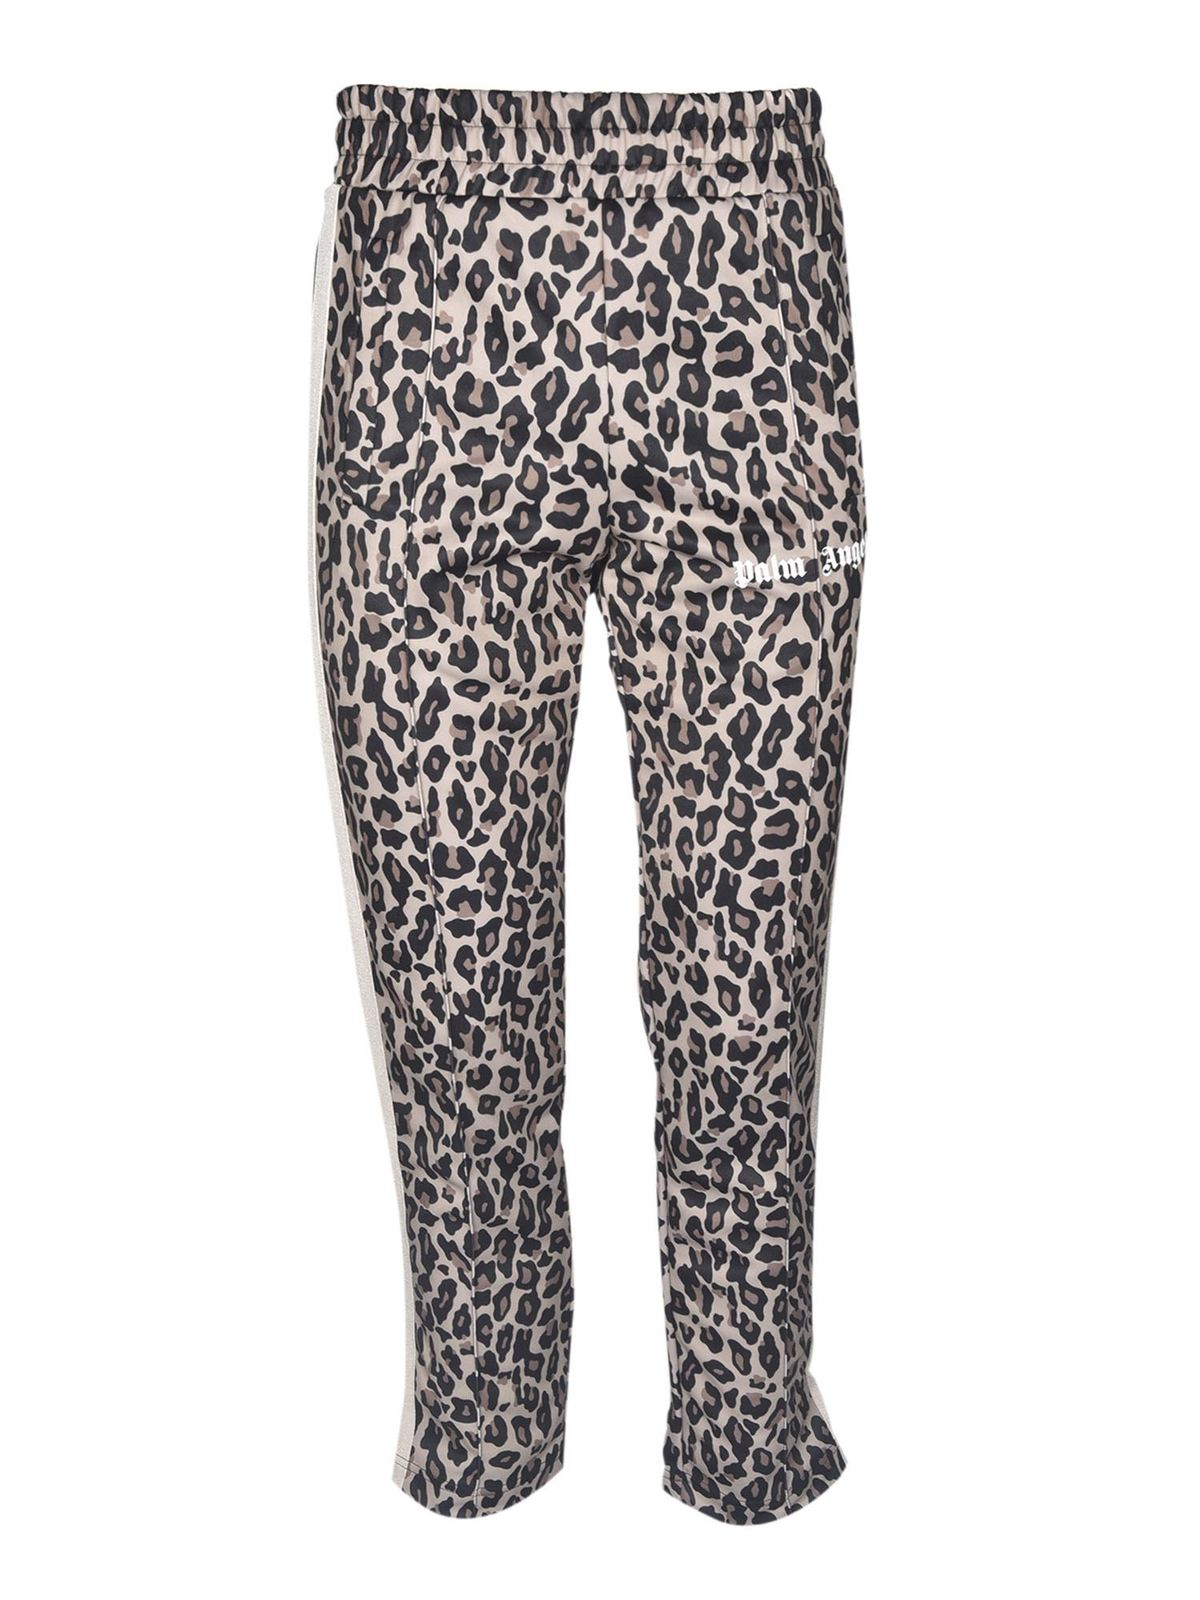 Palm Angels Linings LEOPARD TRACK PANTS IN YELLOW WHITE